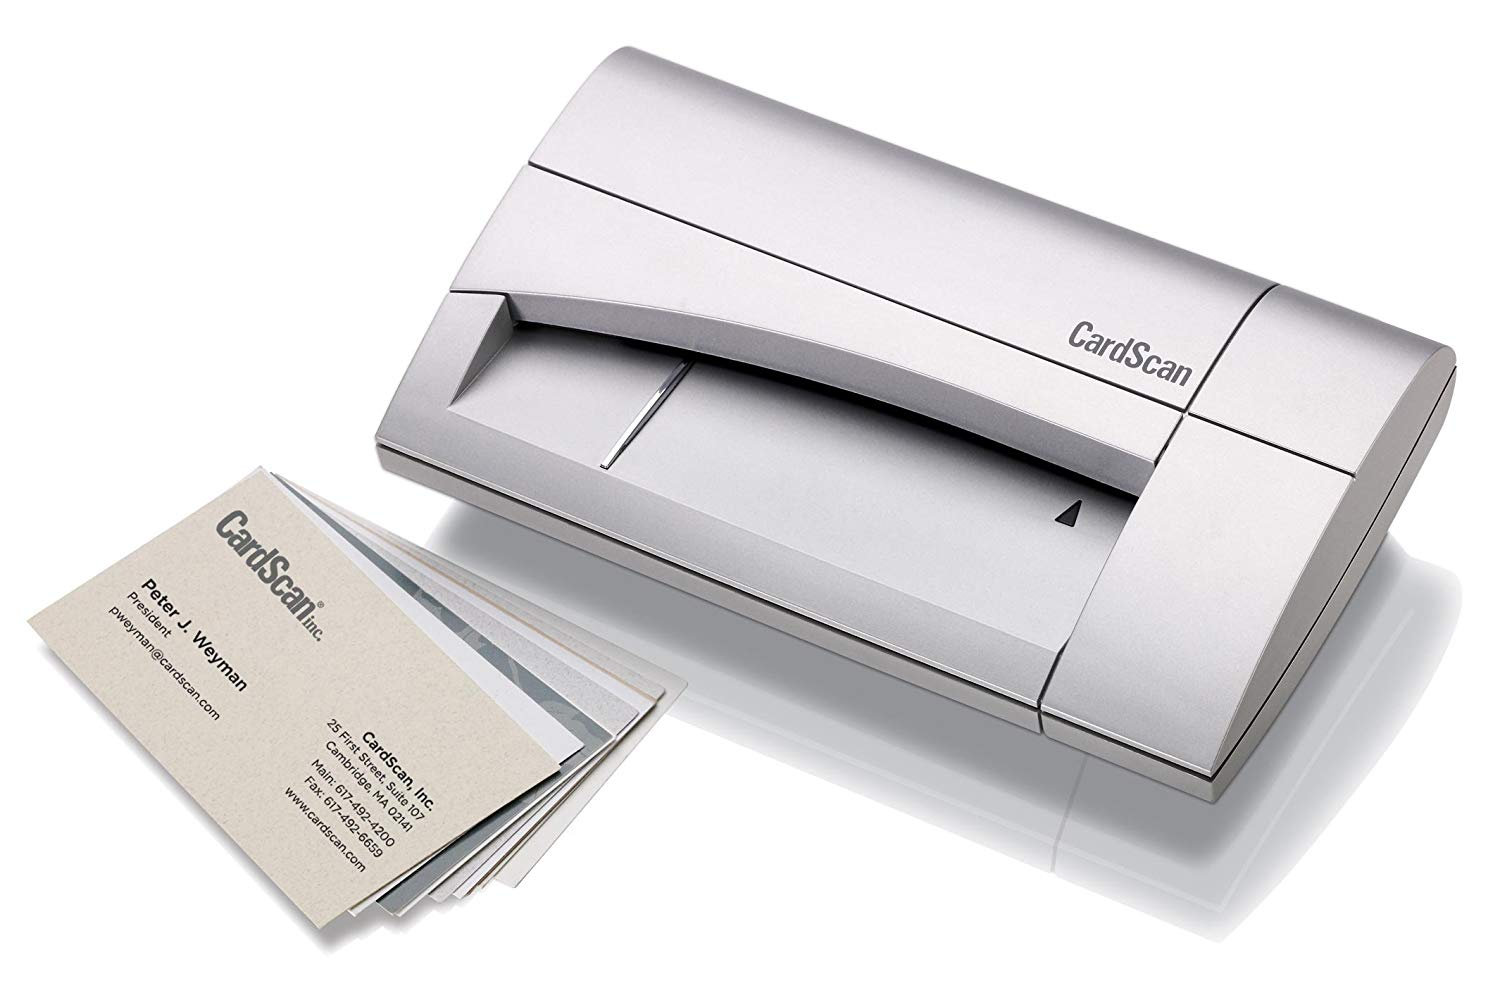 Dymo Cardscan Executive V8 Card Scanner